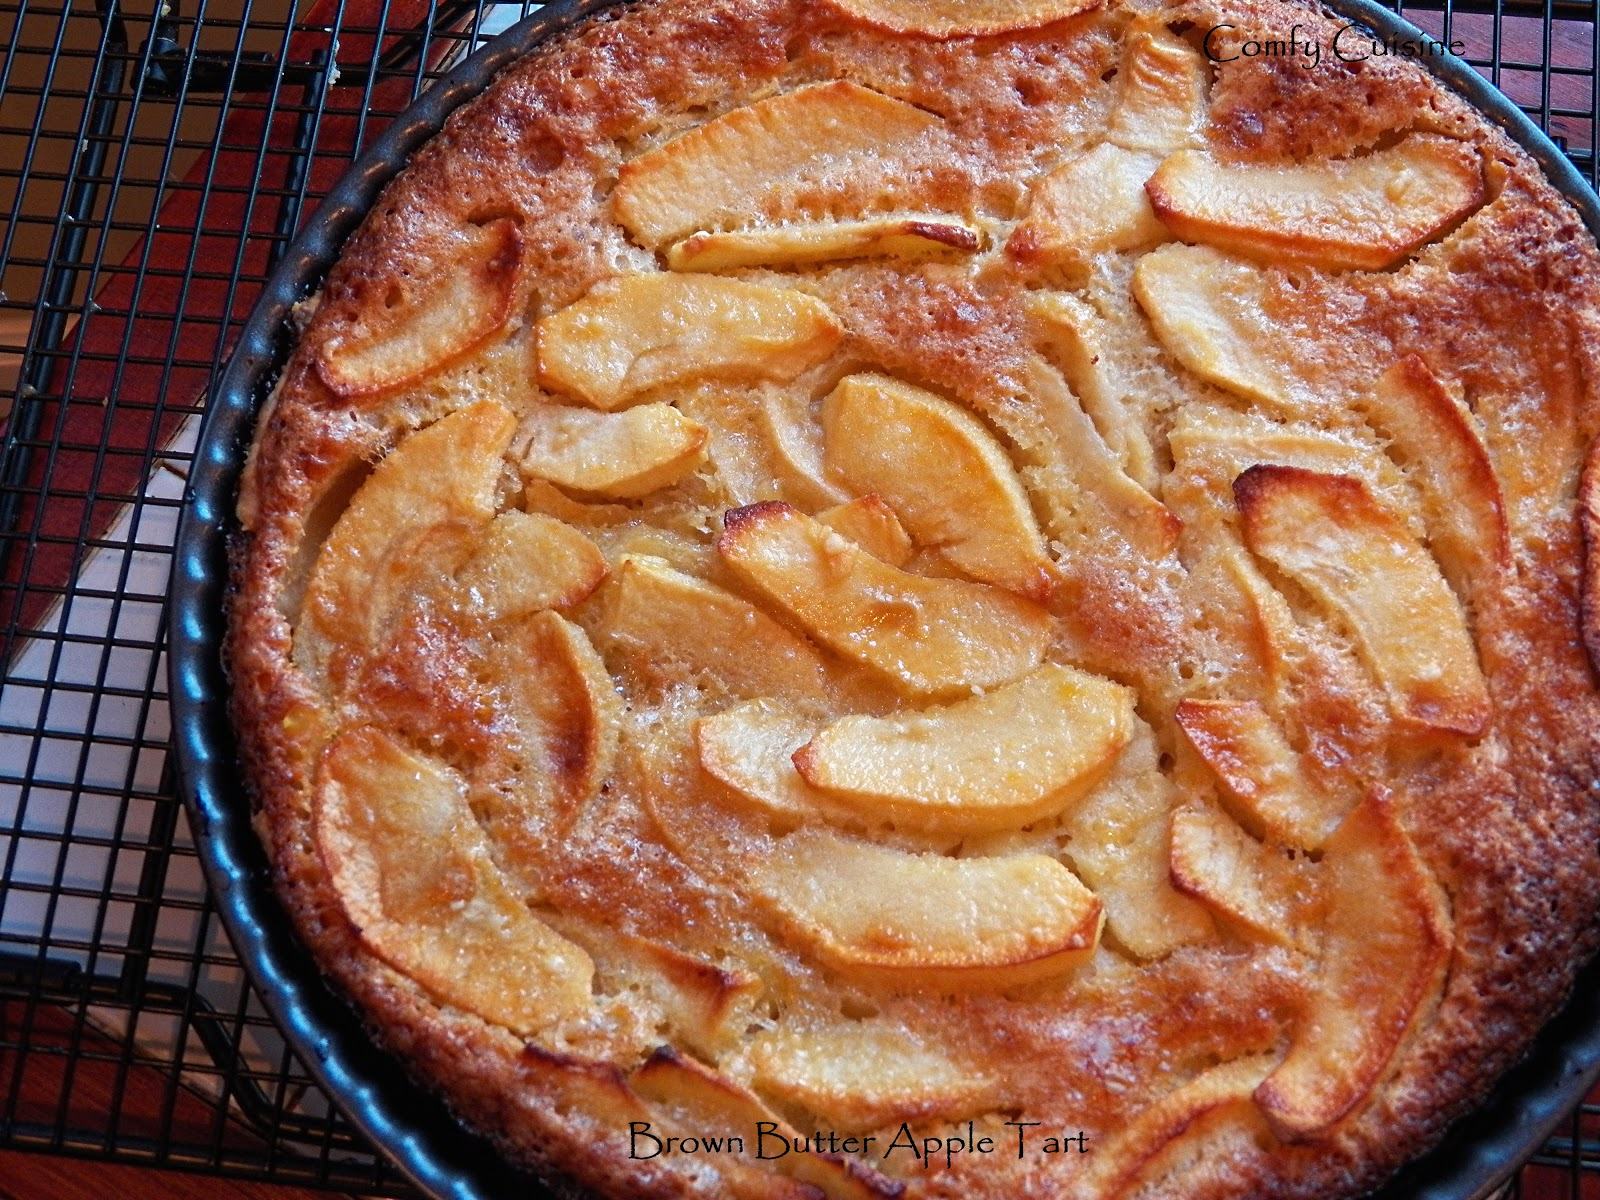 Comfy Cuisine: Brown Butter Apple Tart